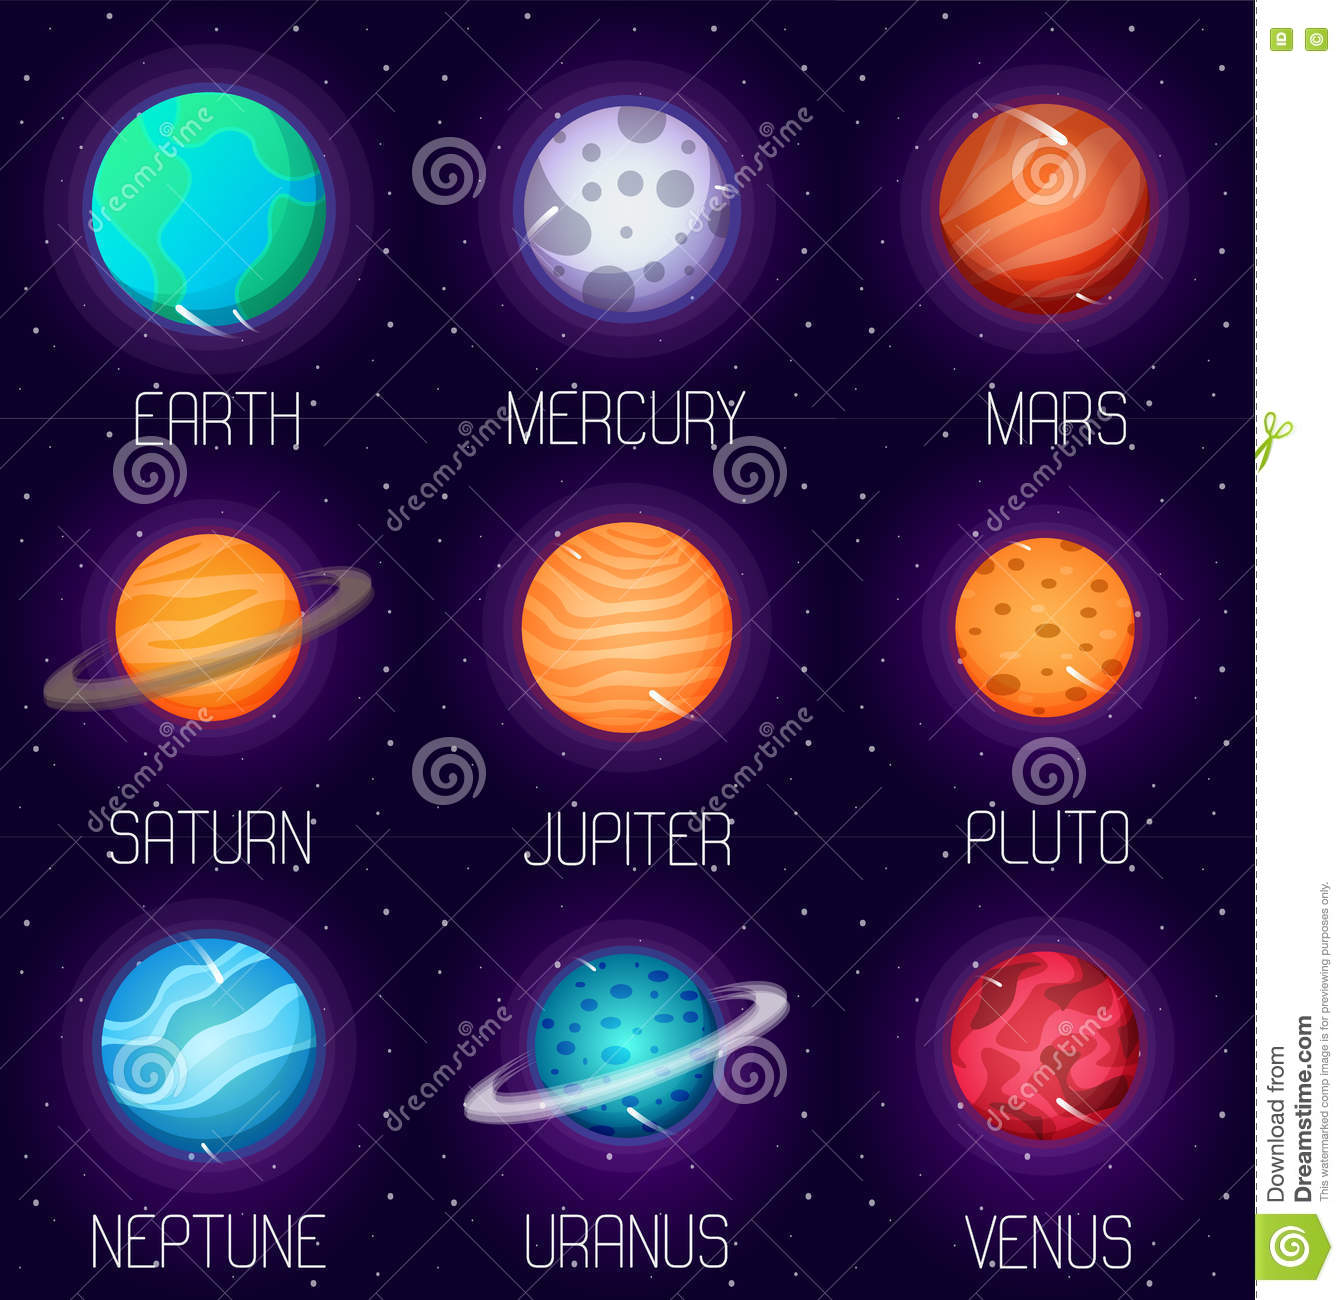 Planets cartoons illustrations vector stock images for Outer space stage design